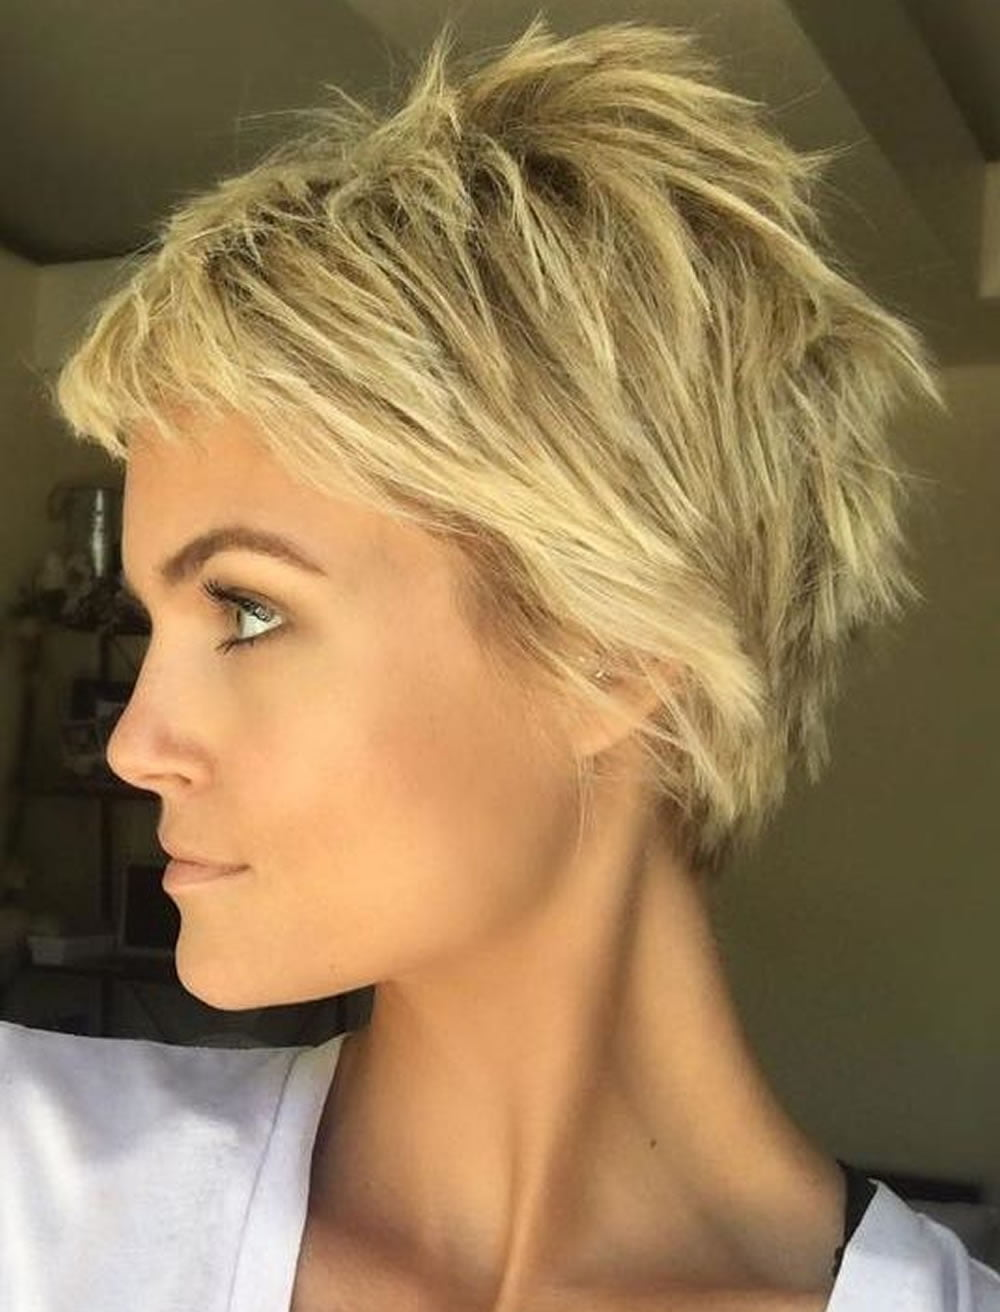 Asymmetric Short Haircuts and Hairstyles for 2017-2018